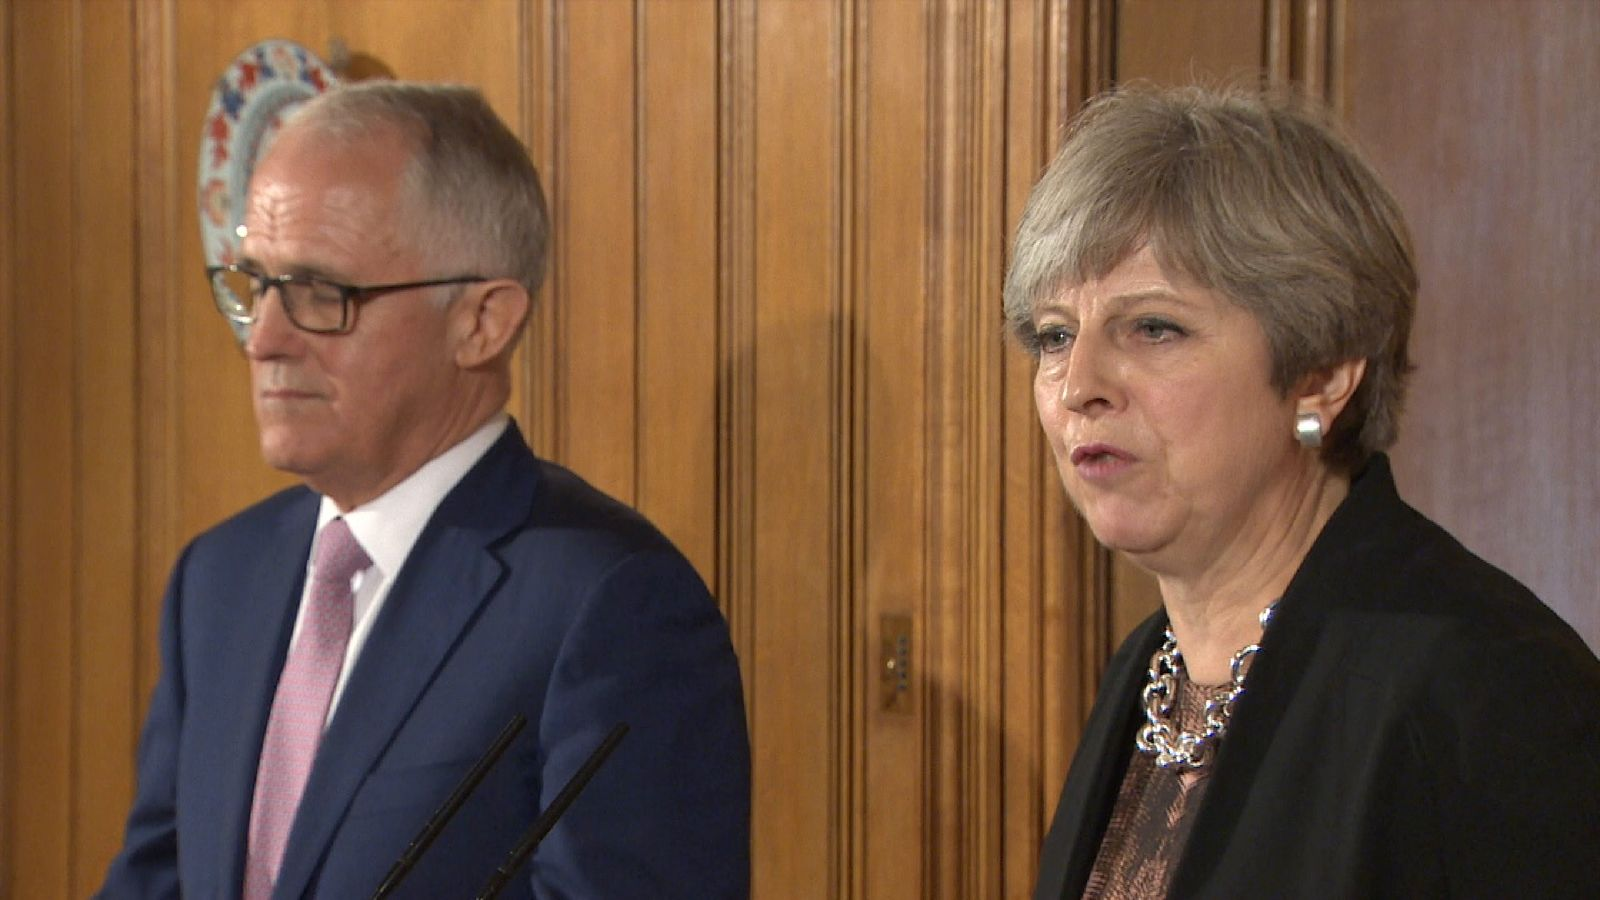 The Prime Minister's of the UK and Australia have both agreed to quickly tie up a trade deal after Brexit.